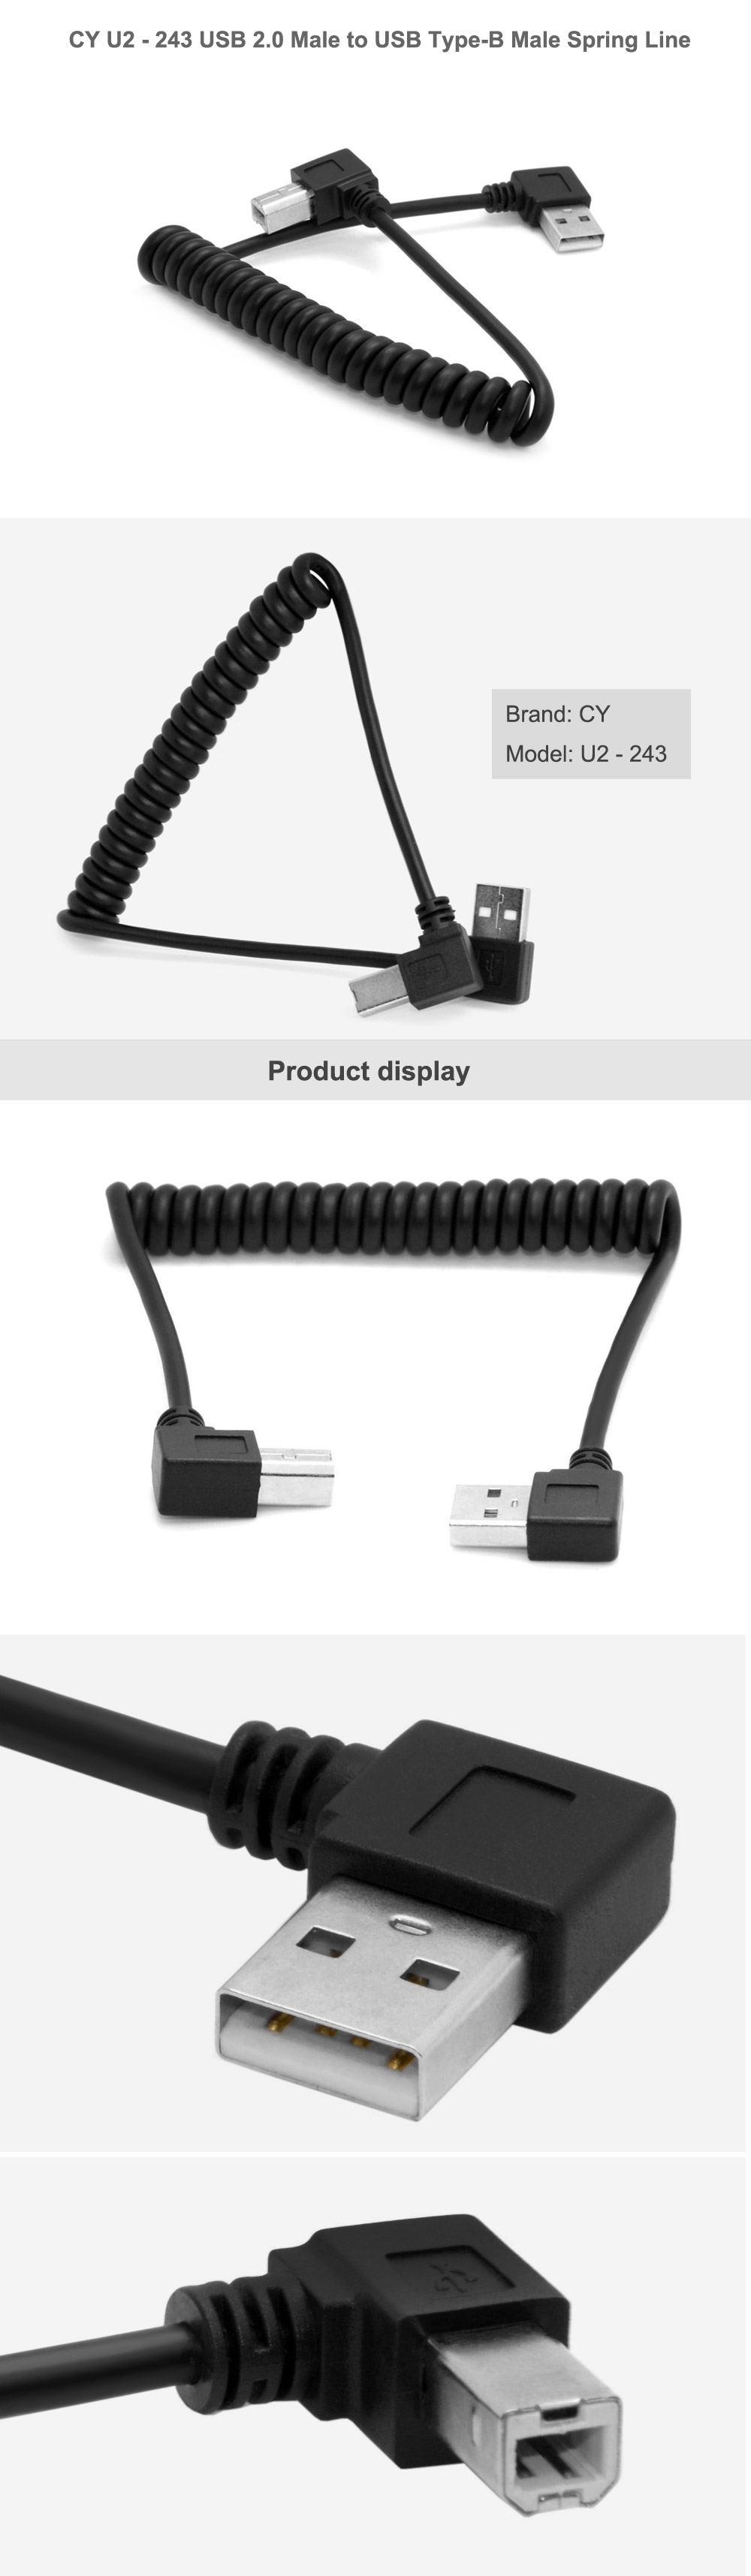 CY U2 - 243 USB 2.0 Male to USB Type-B Male Adapter Spring Line